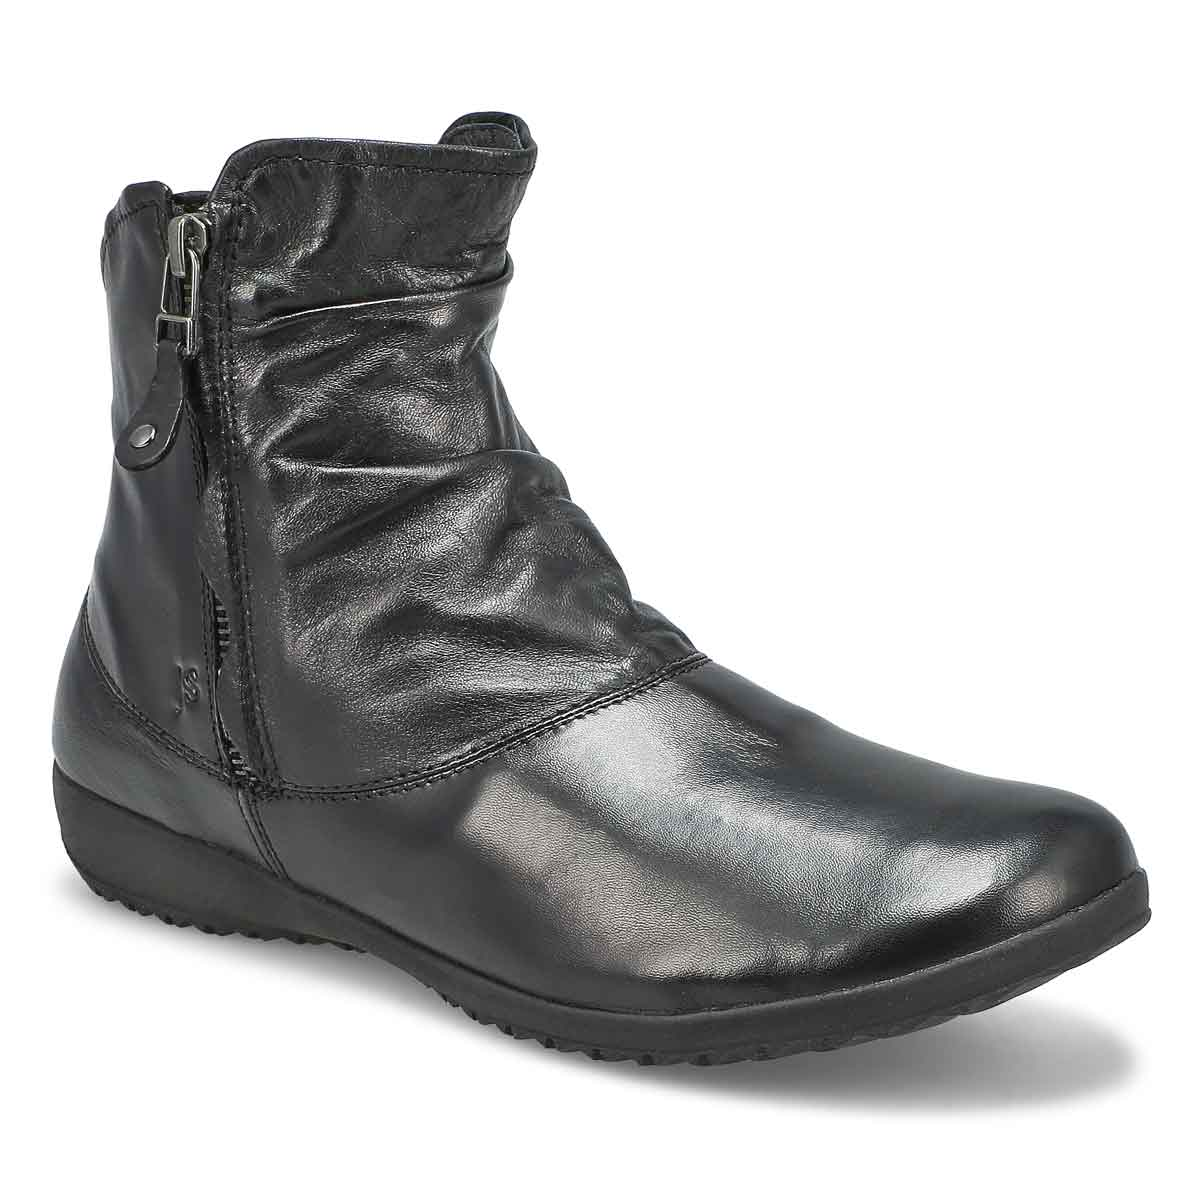 Lds Naly 24 schwarz side zip ankle boot